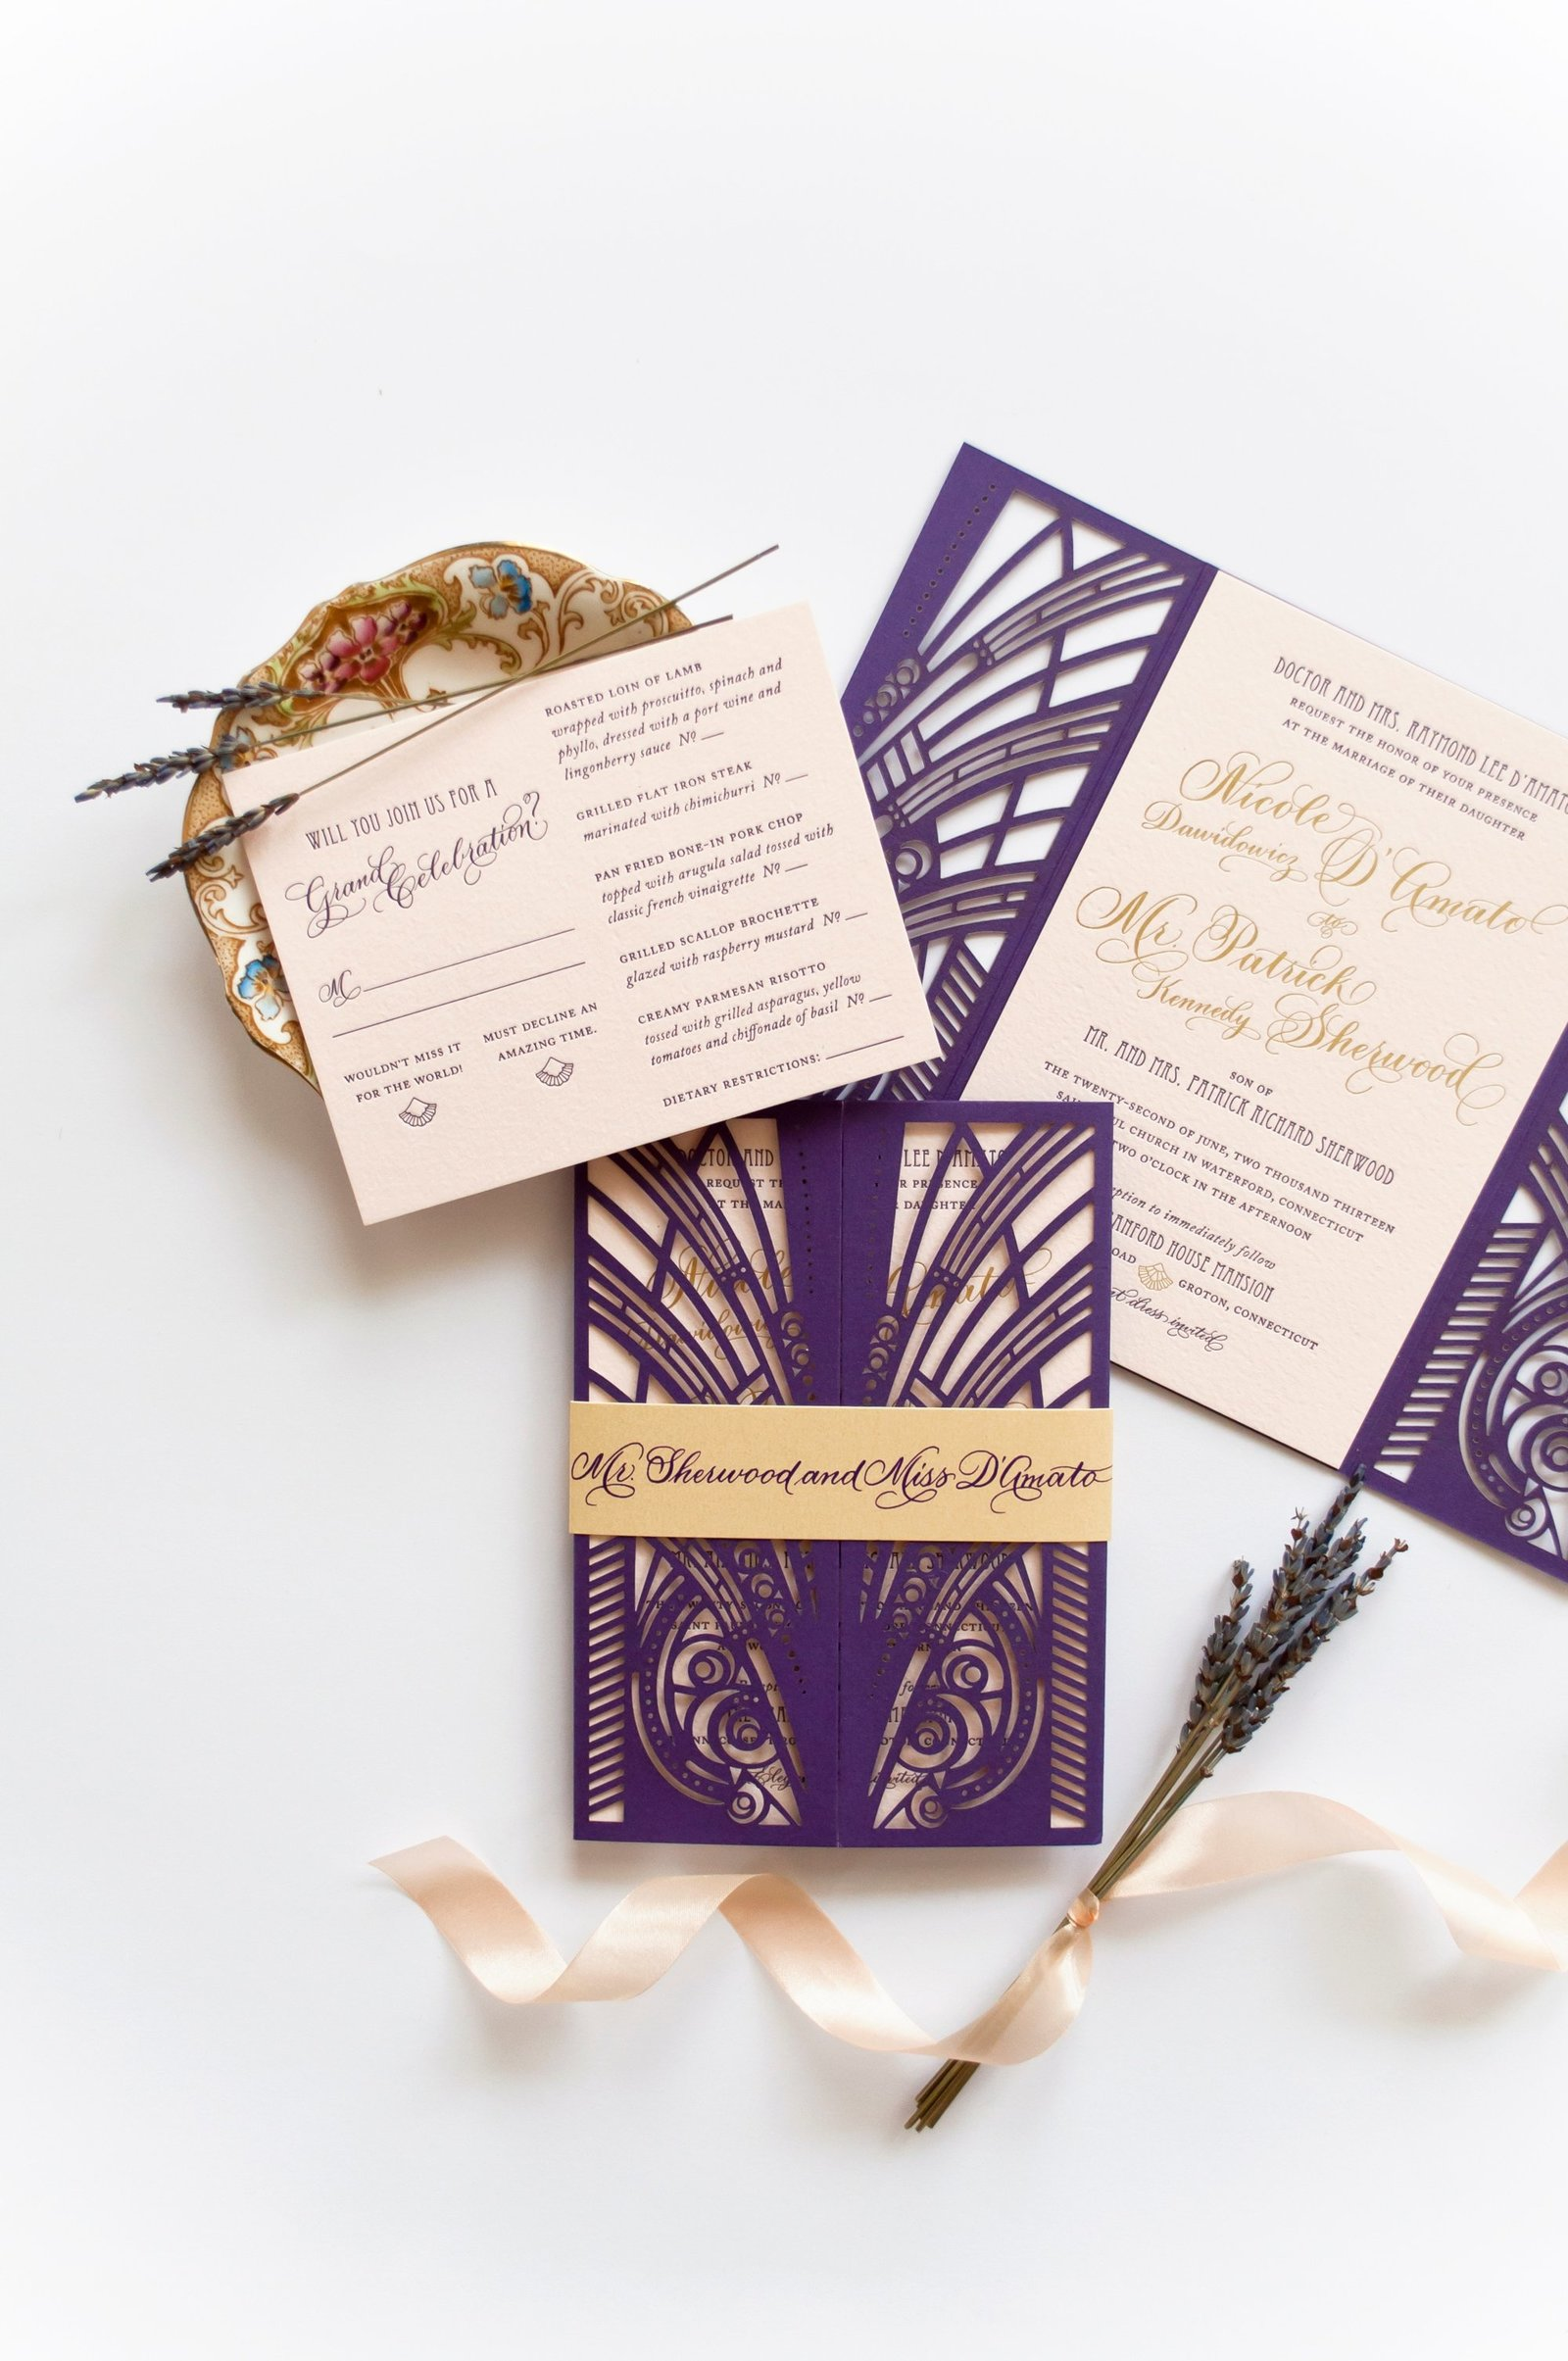 Luxurious gatsby themed letterpress wedding invitations for wedding at The Branford House in Groton, CT